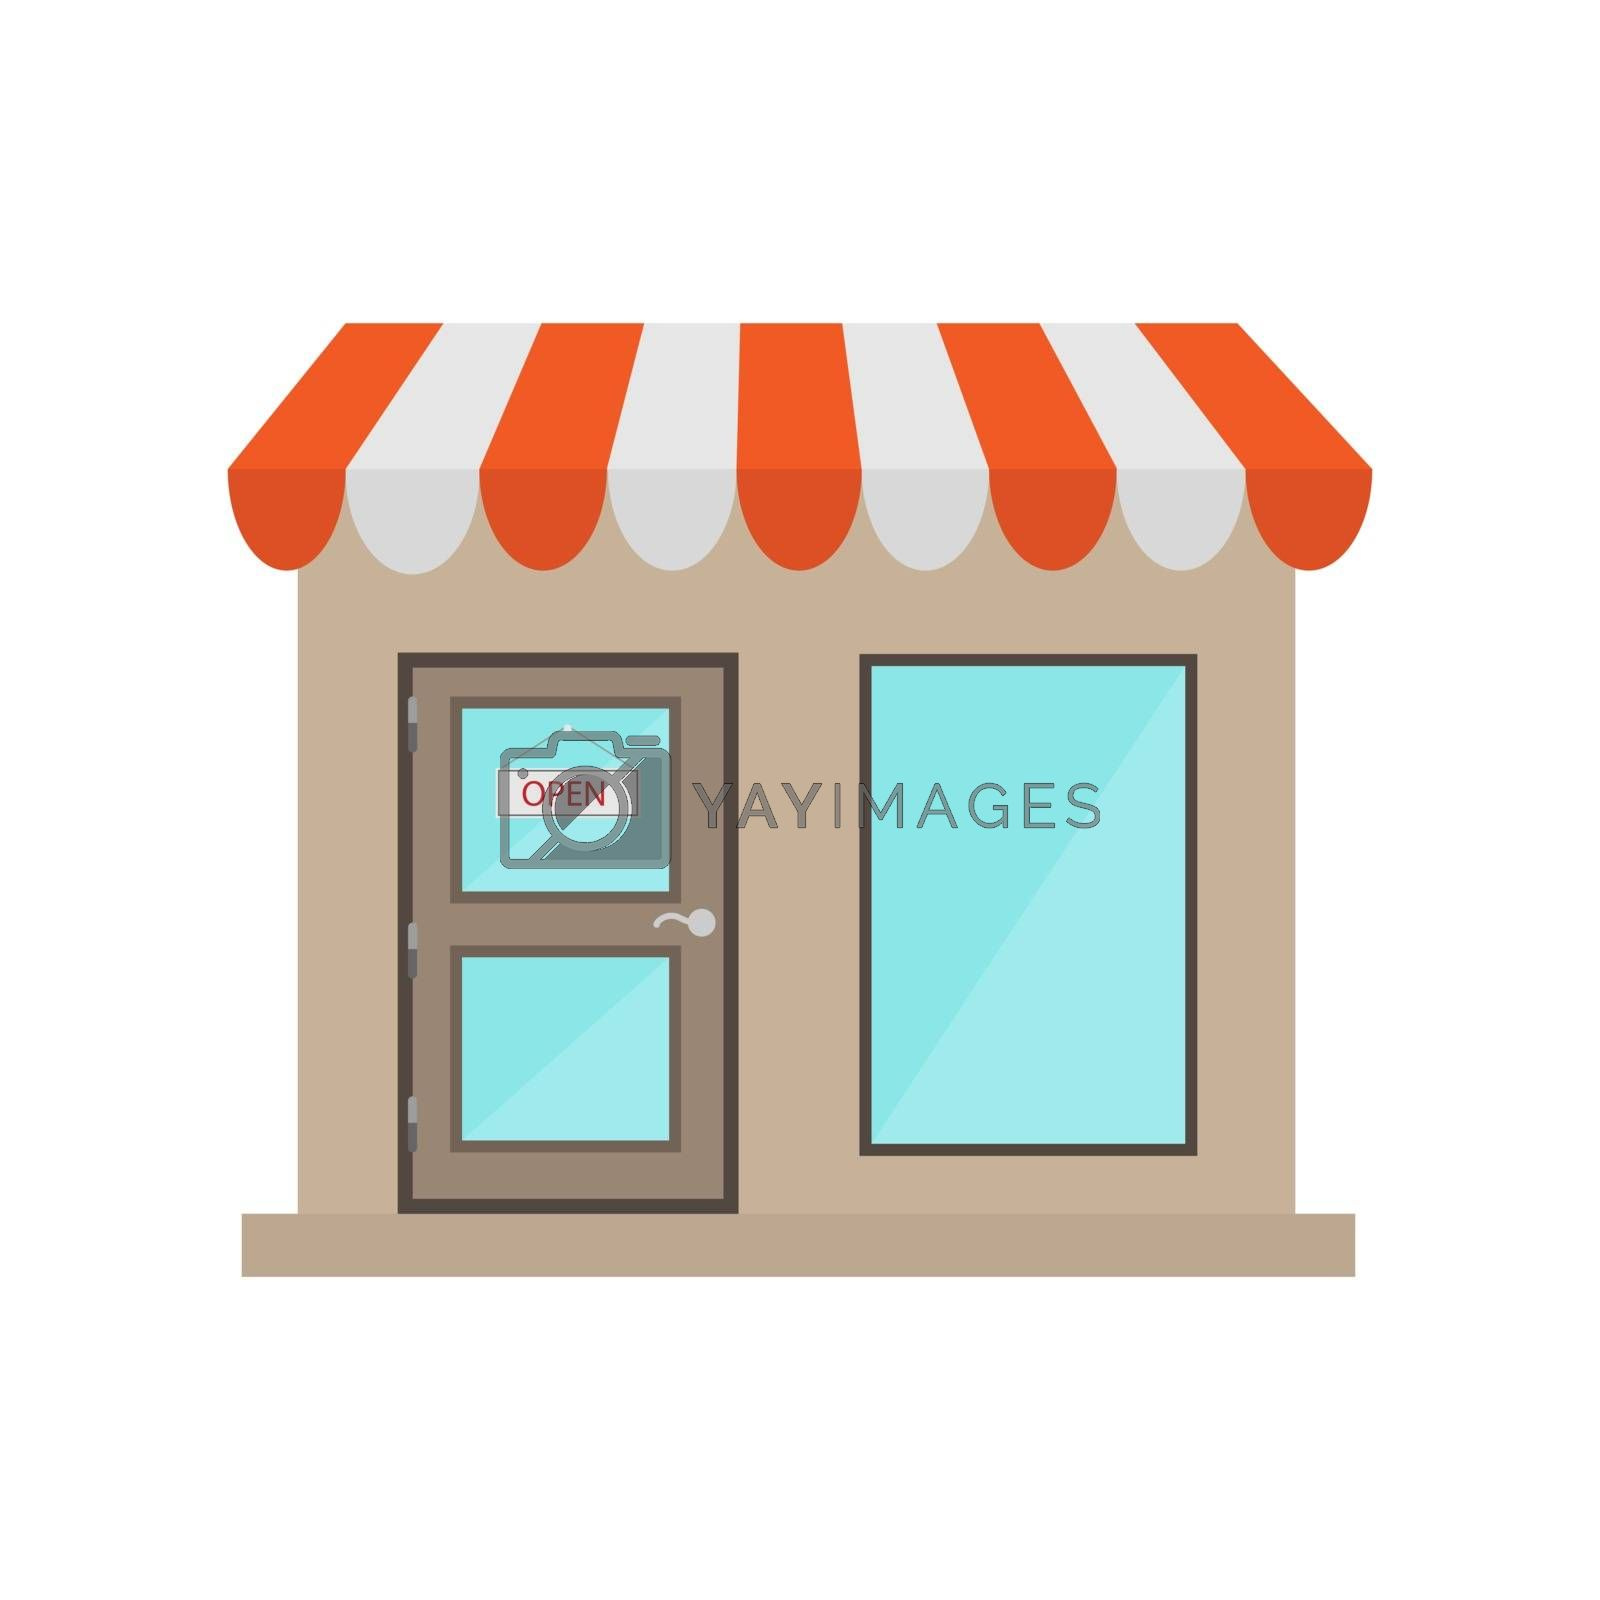 On the door of the store hangs a sign open, e-Commerce